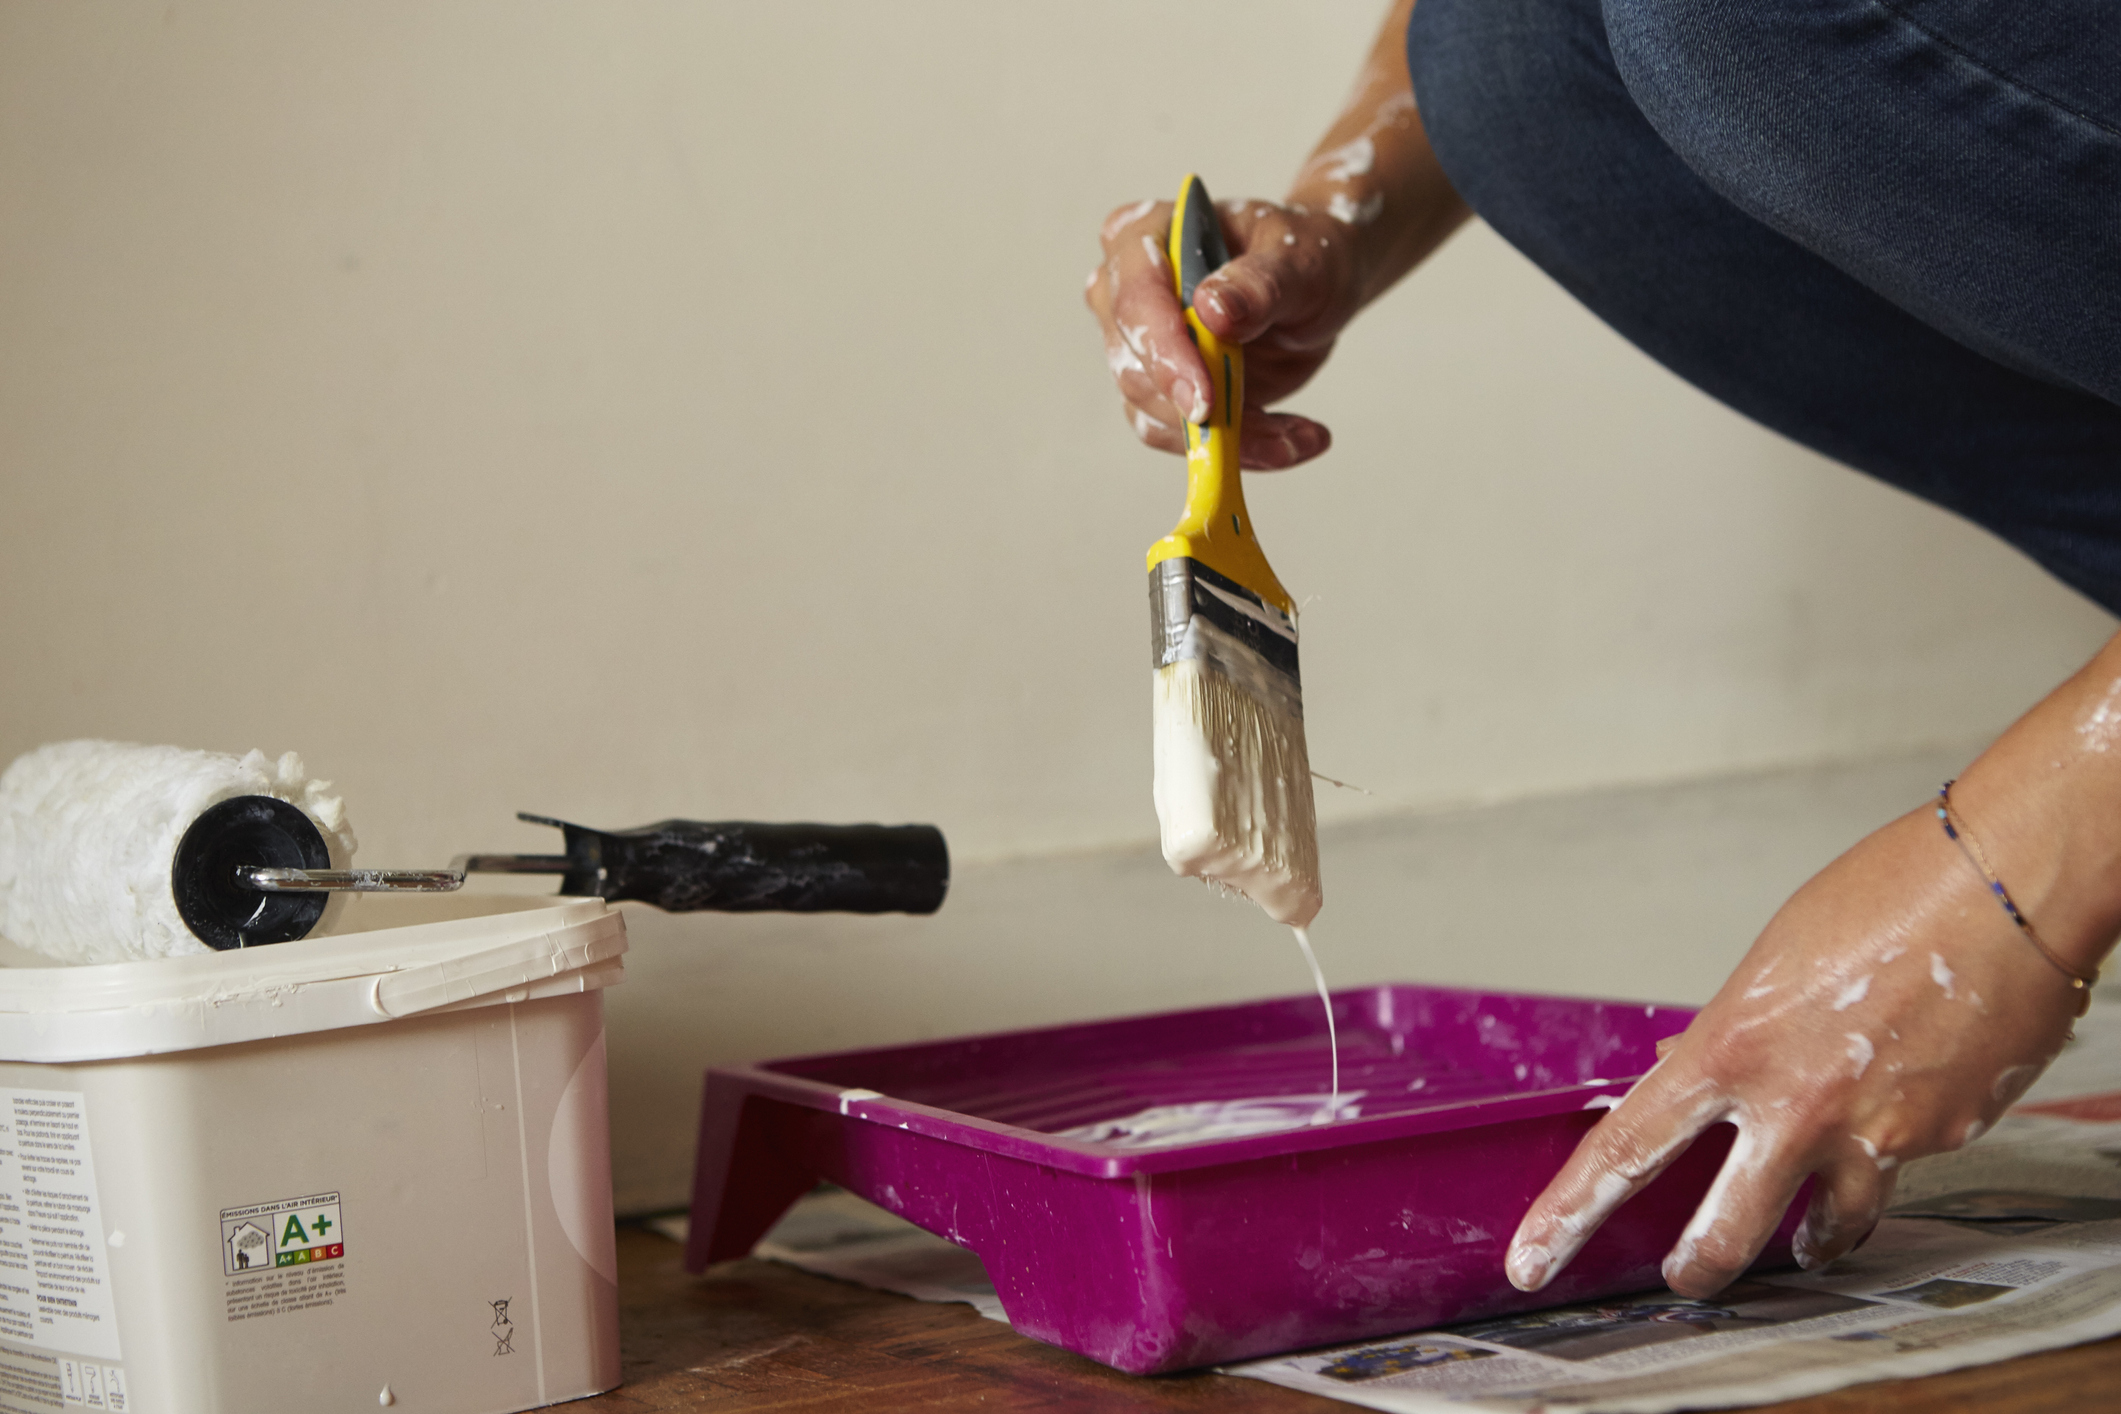 How To Remove Dried Paint From Wood Apartment Therapy